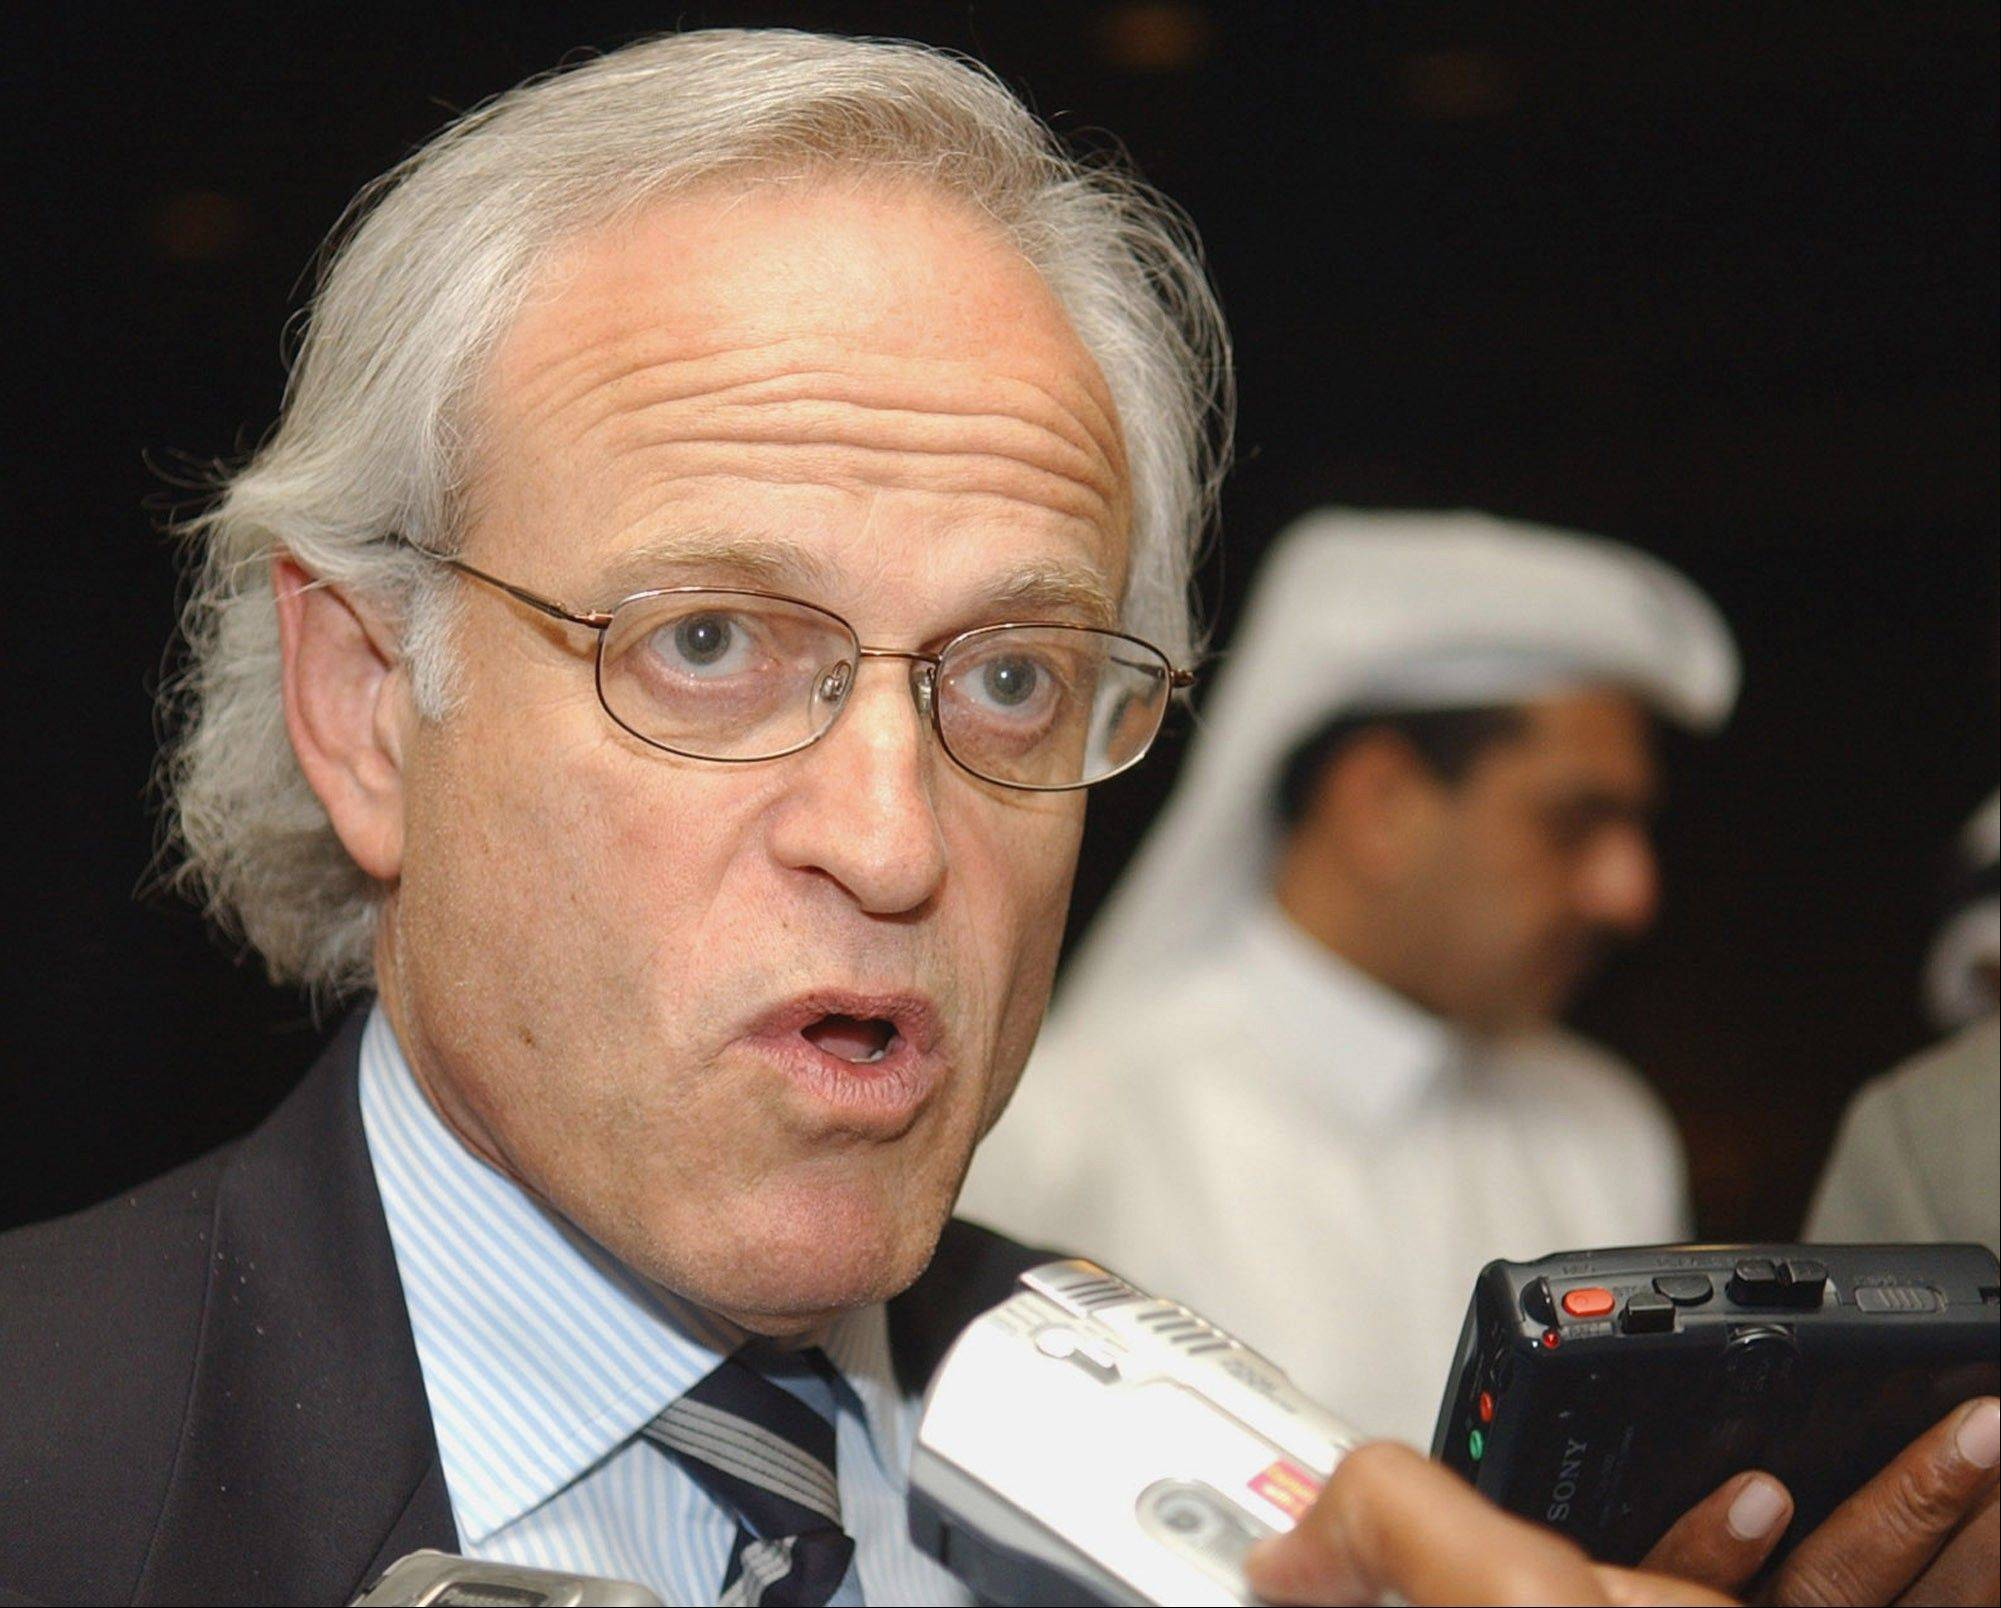 In this April 11, 2005 file photo, Martin Indyk speaks in Doha, Qatar. Secretary of State John Kerry appointed Indyk to shepherd Israeli-Palestinian peace talks that begin Monday evening in Washington.